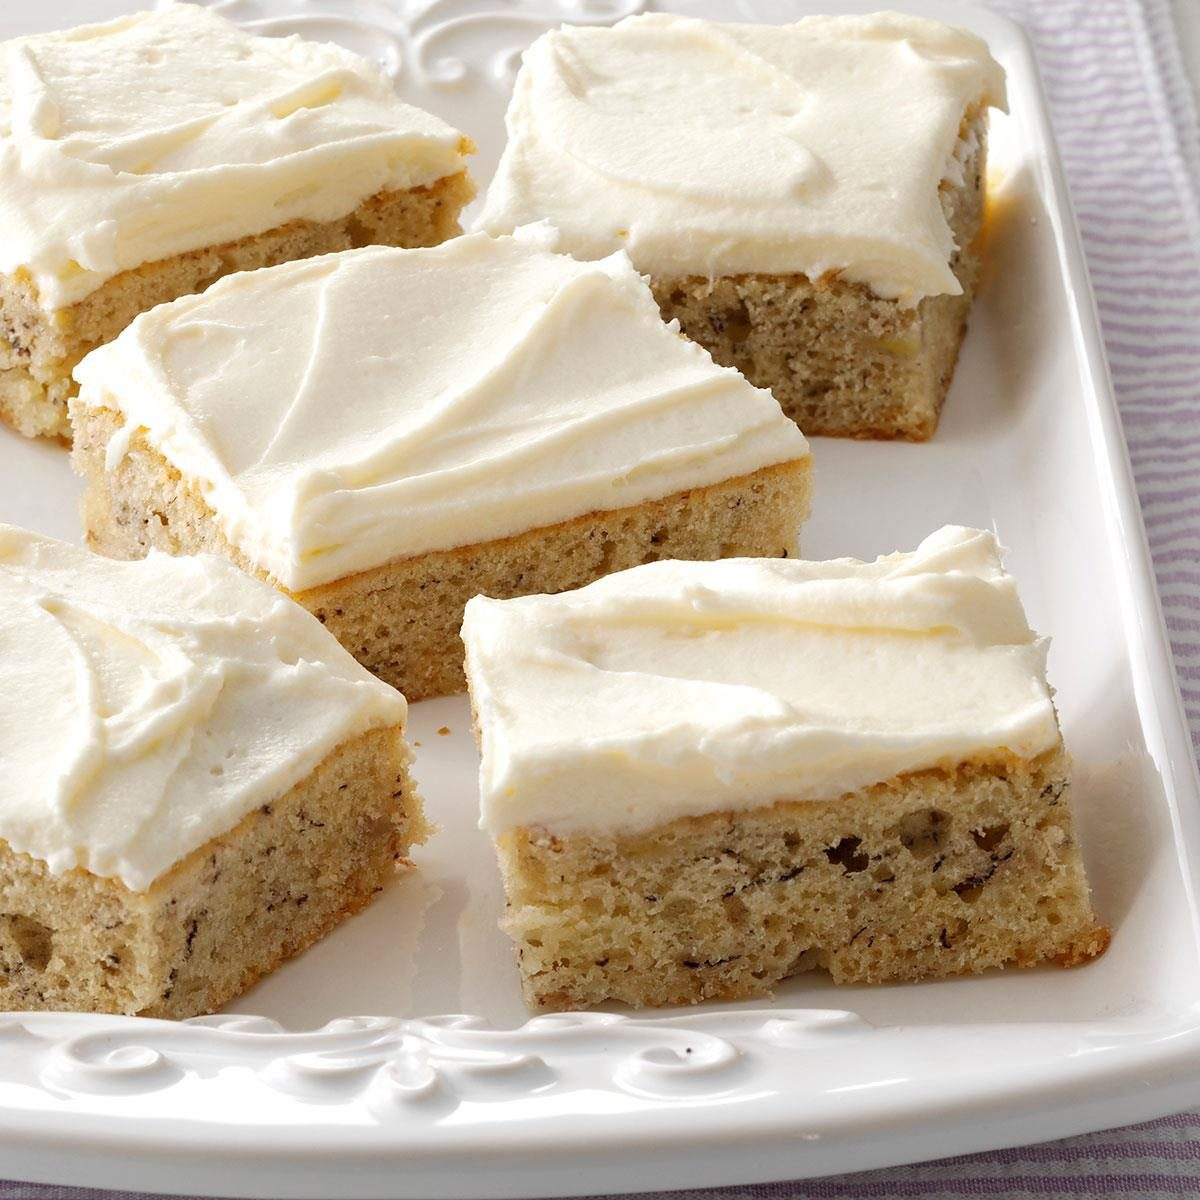 Best Lemon Icing For Banana Cake